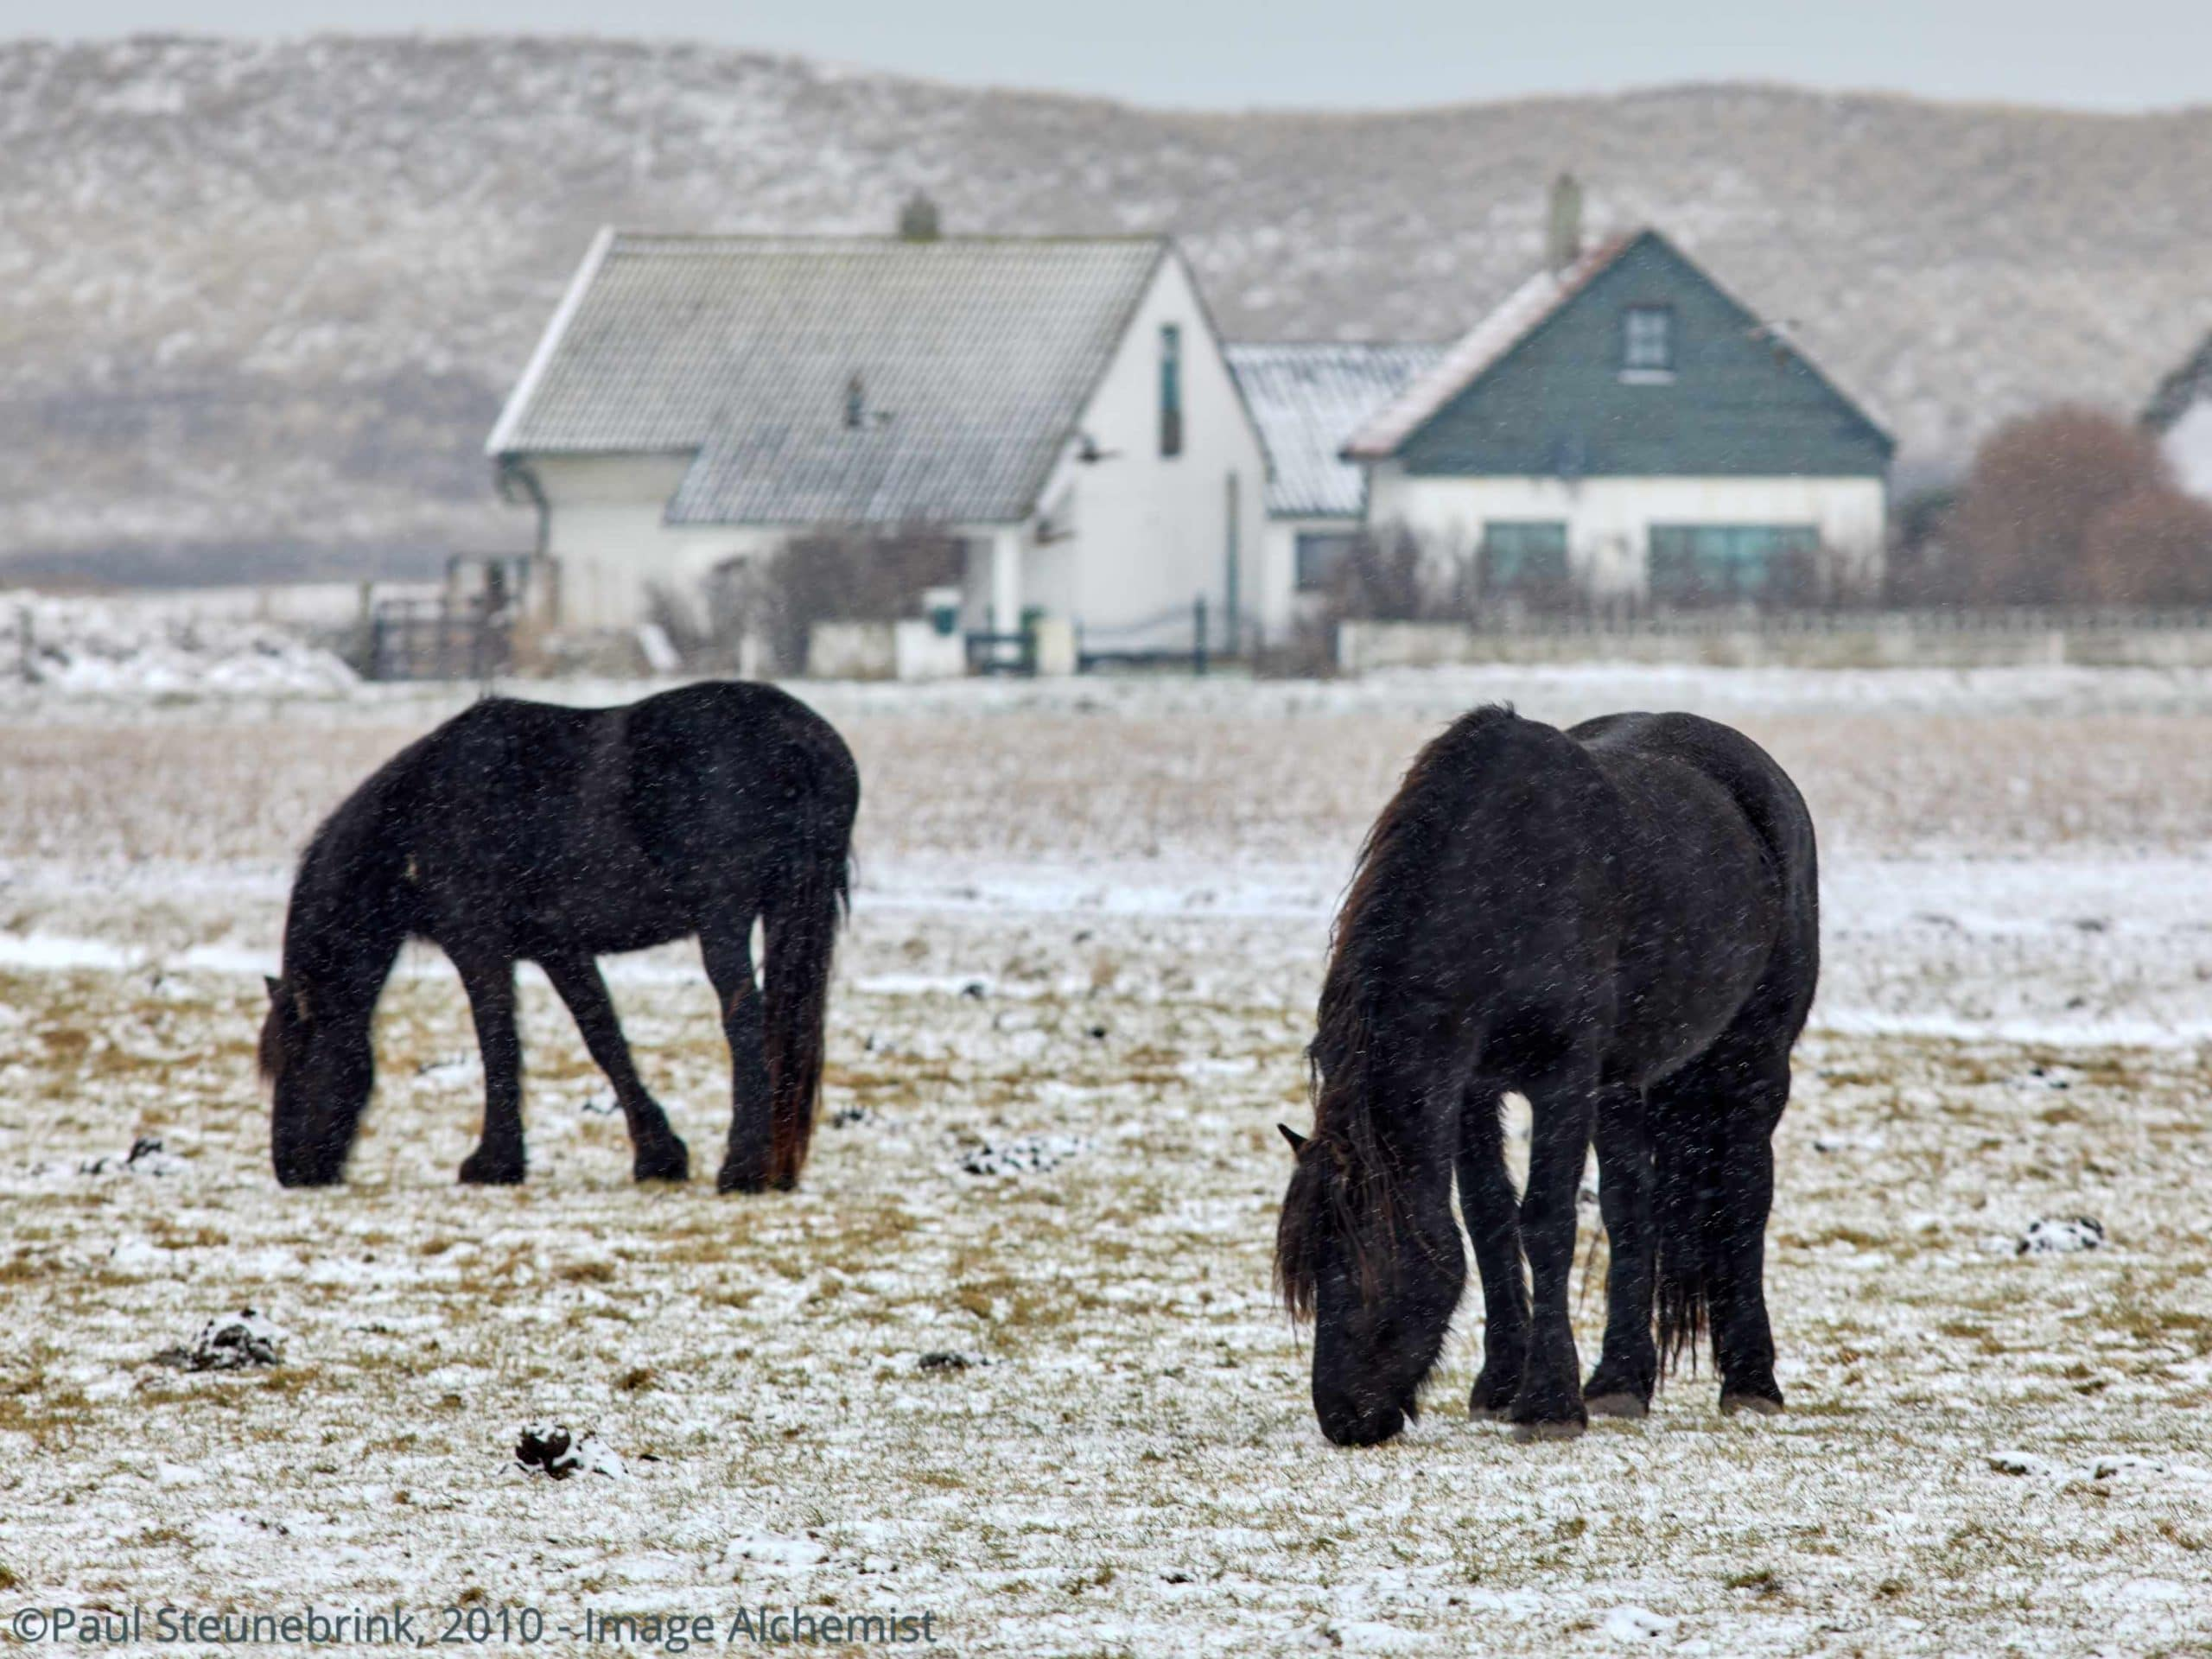 horses in the snow, dunes in background